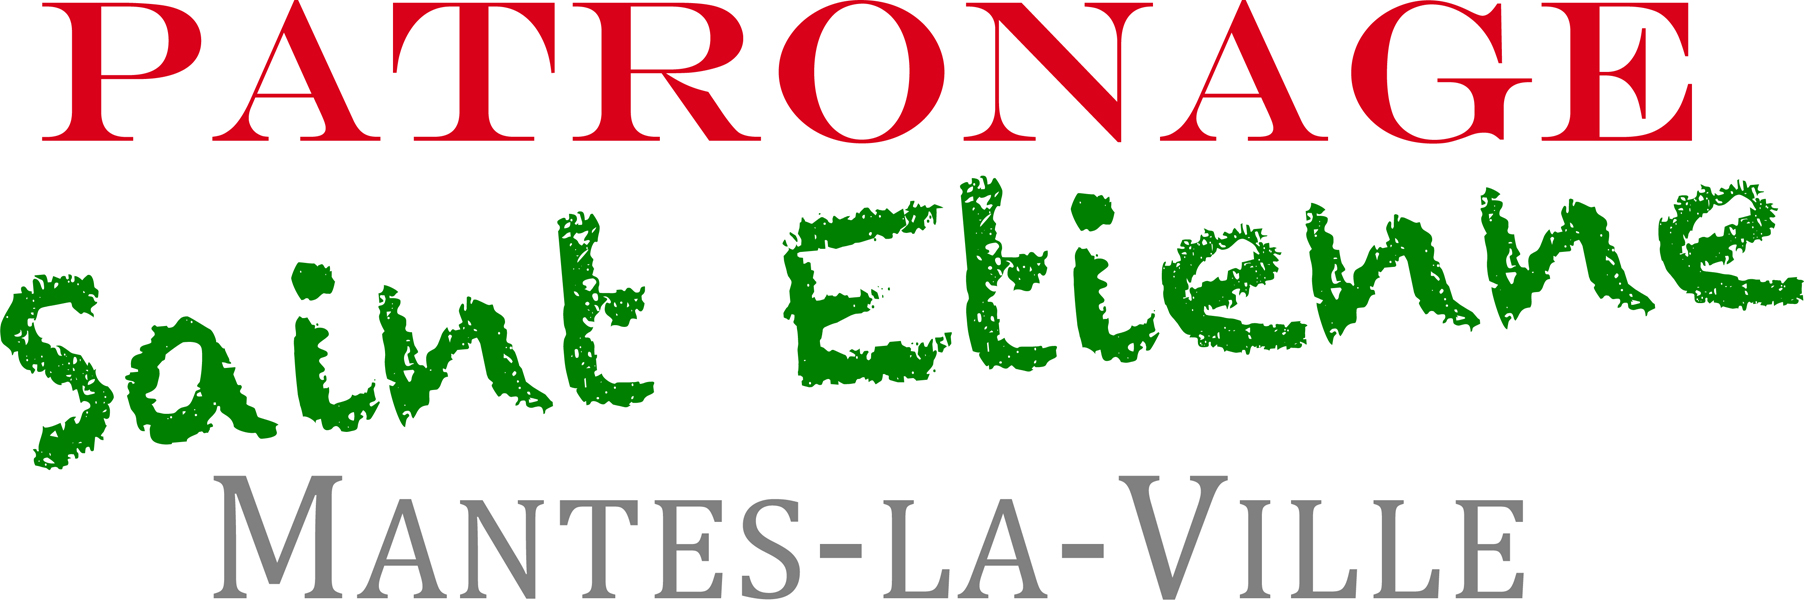 Association - Patronage Saint Etienne